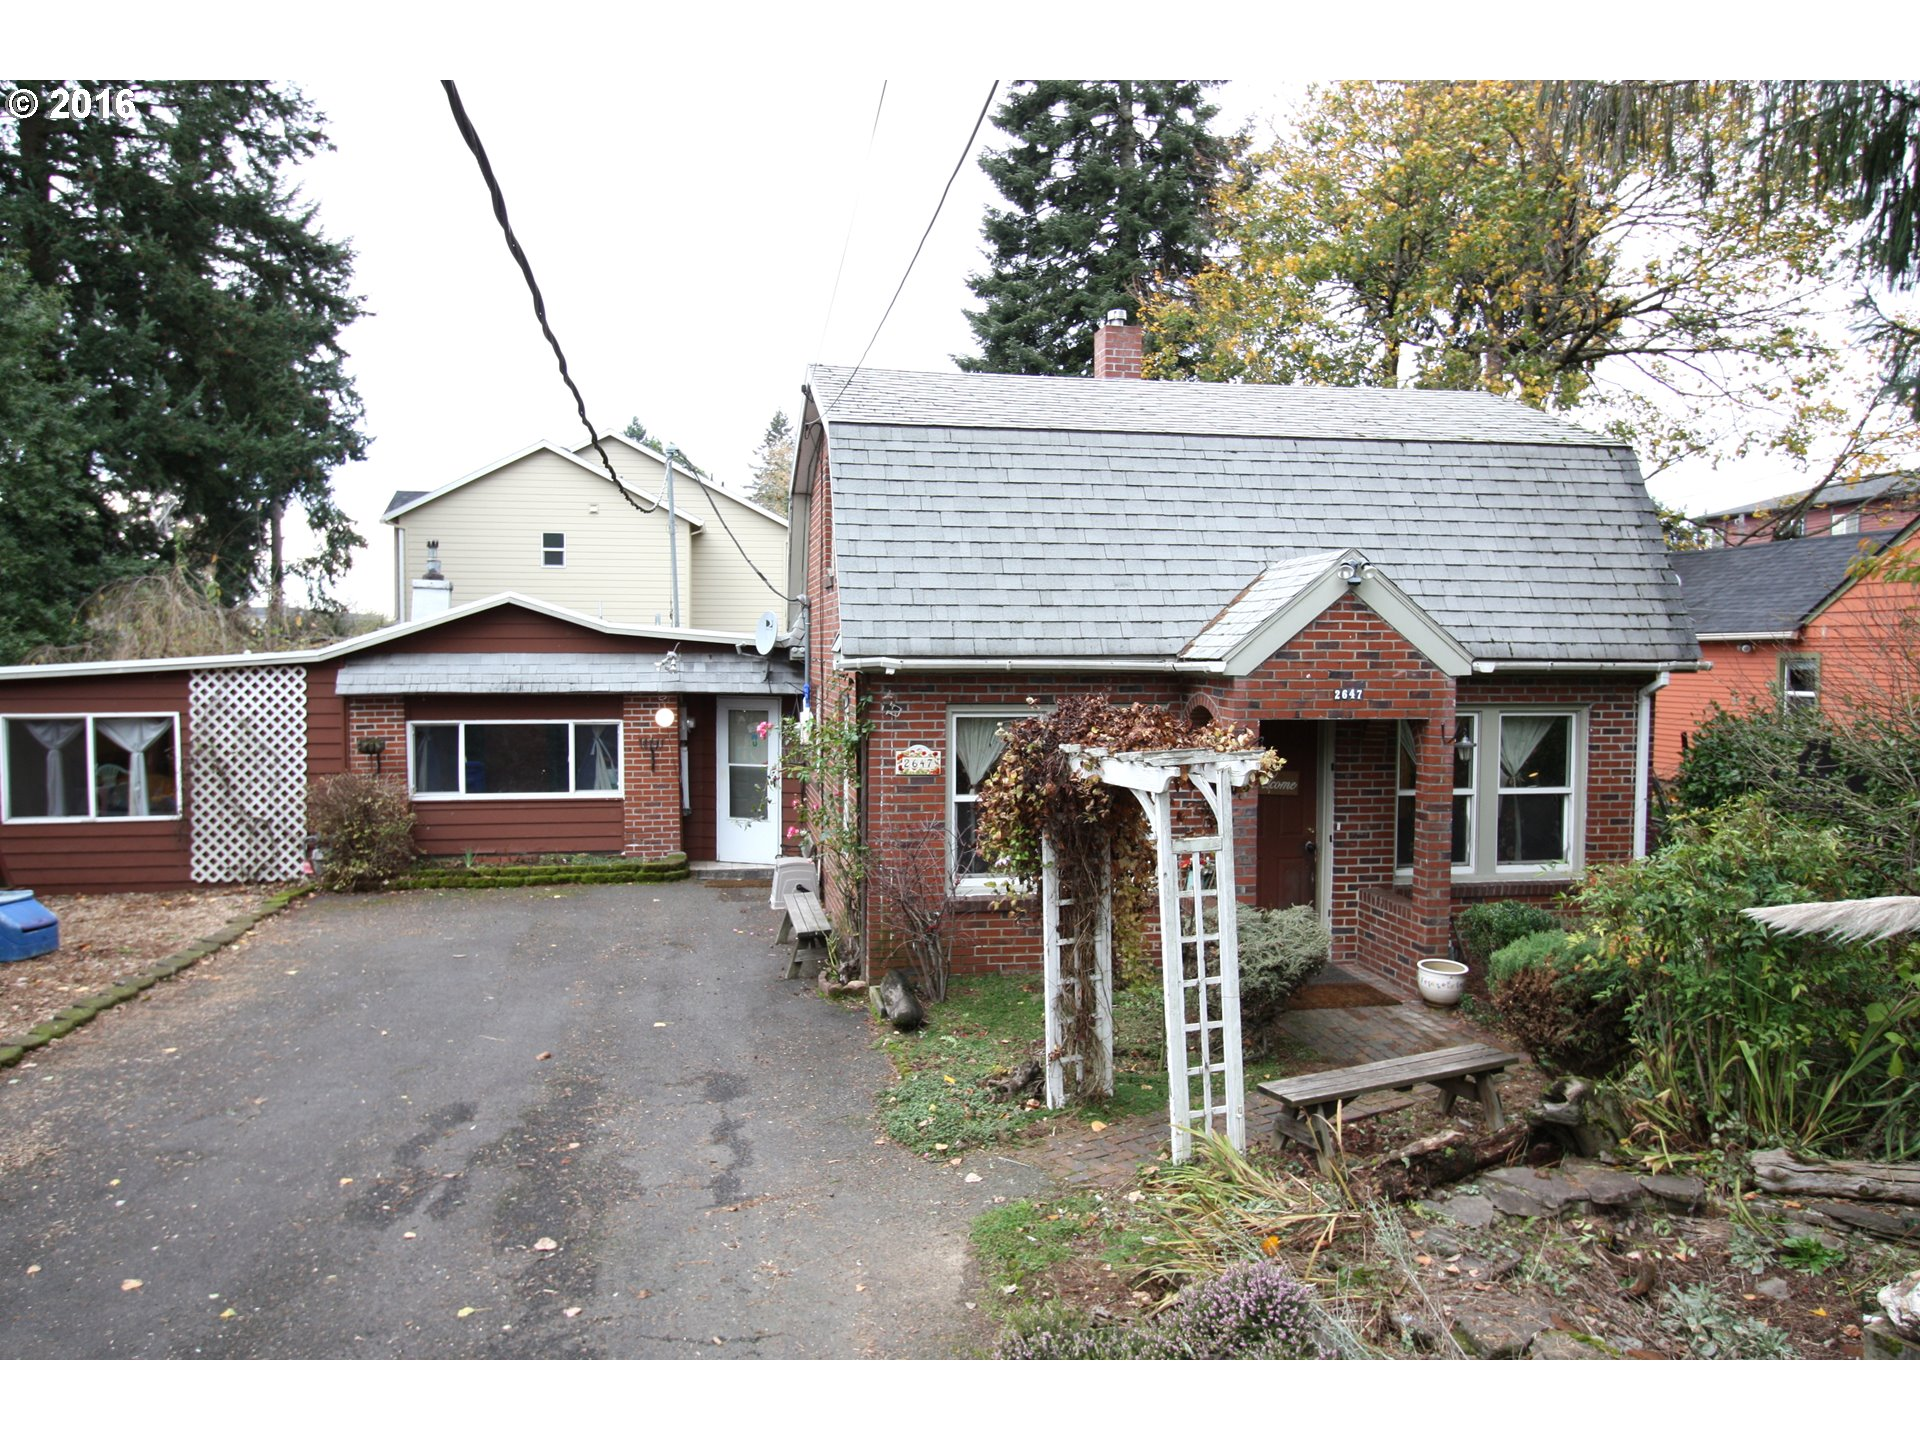 1521 sq. ft 3 bedrooms 2 bathrooms  House ,Portland, OR